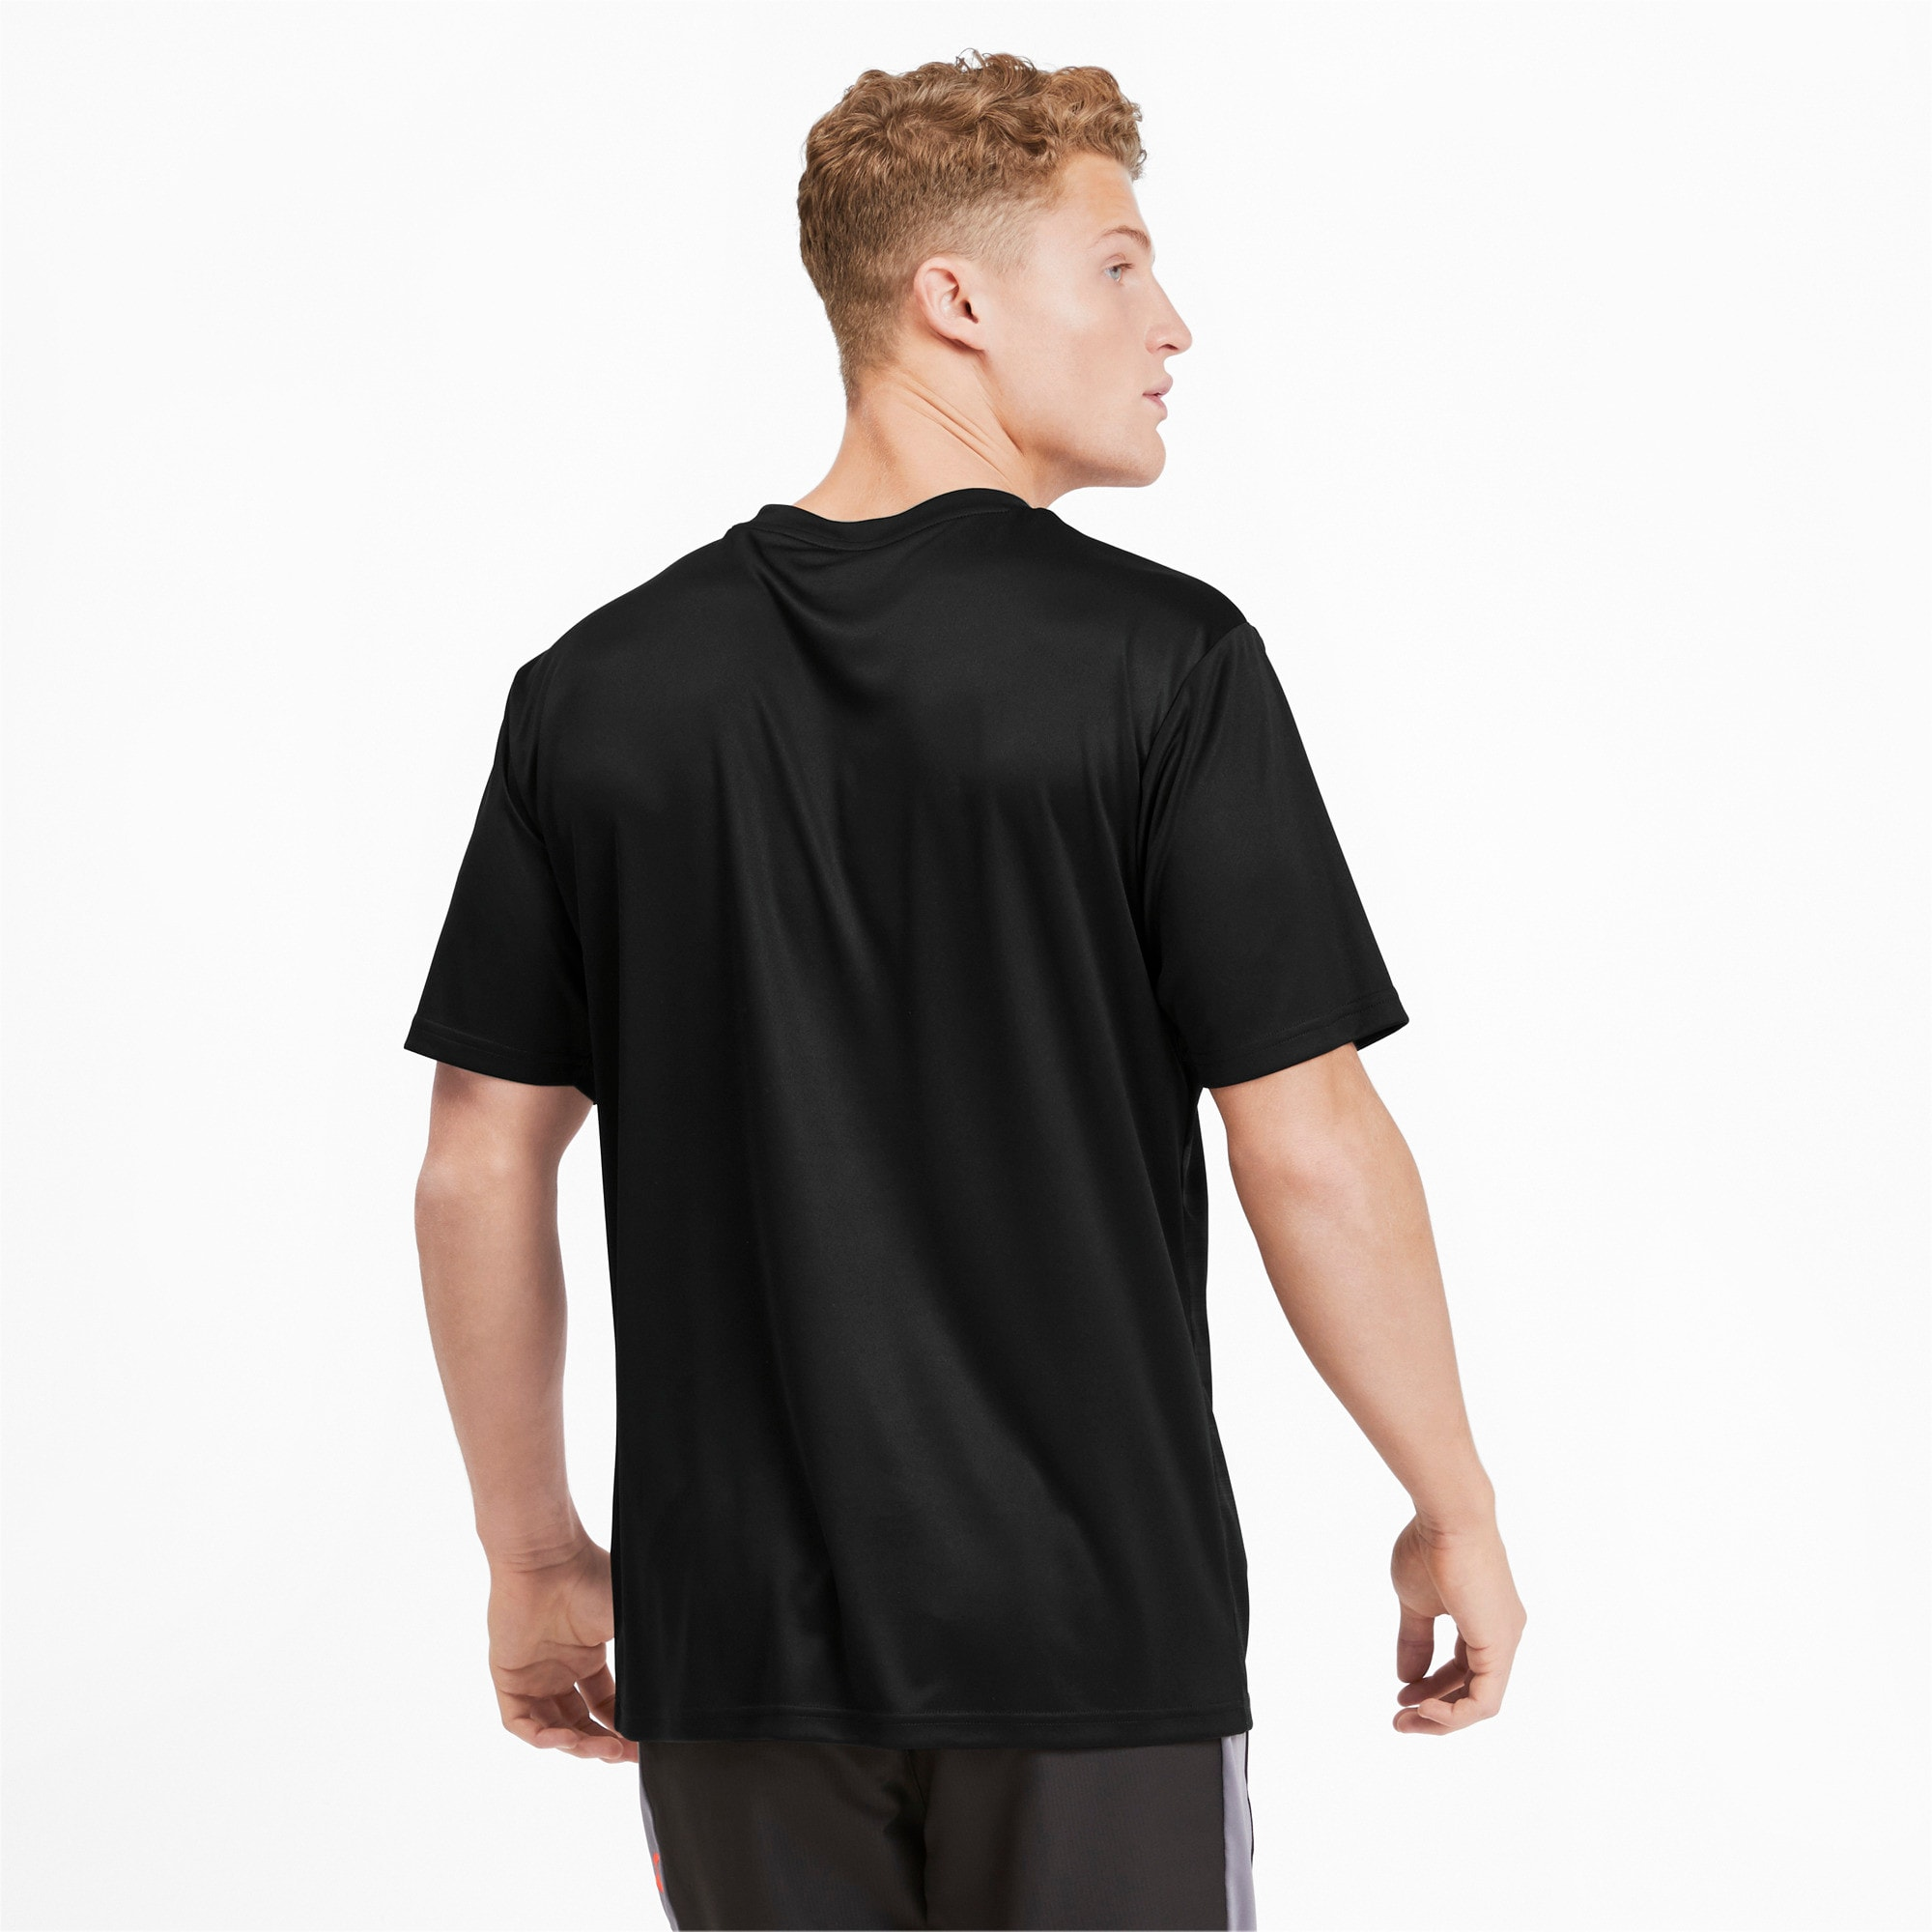 Thumbnail 2 of Core Graphic Men's Shirt, Puma Black-Phantom Black, medium